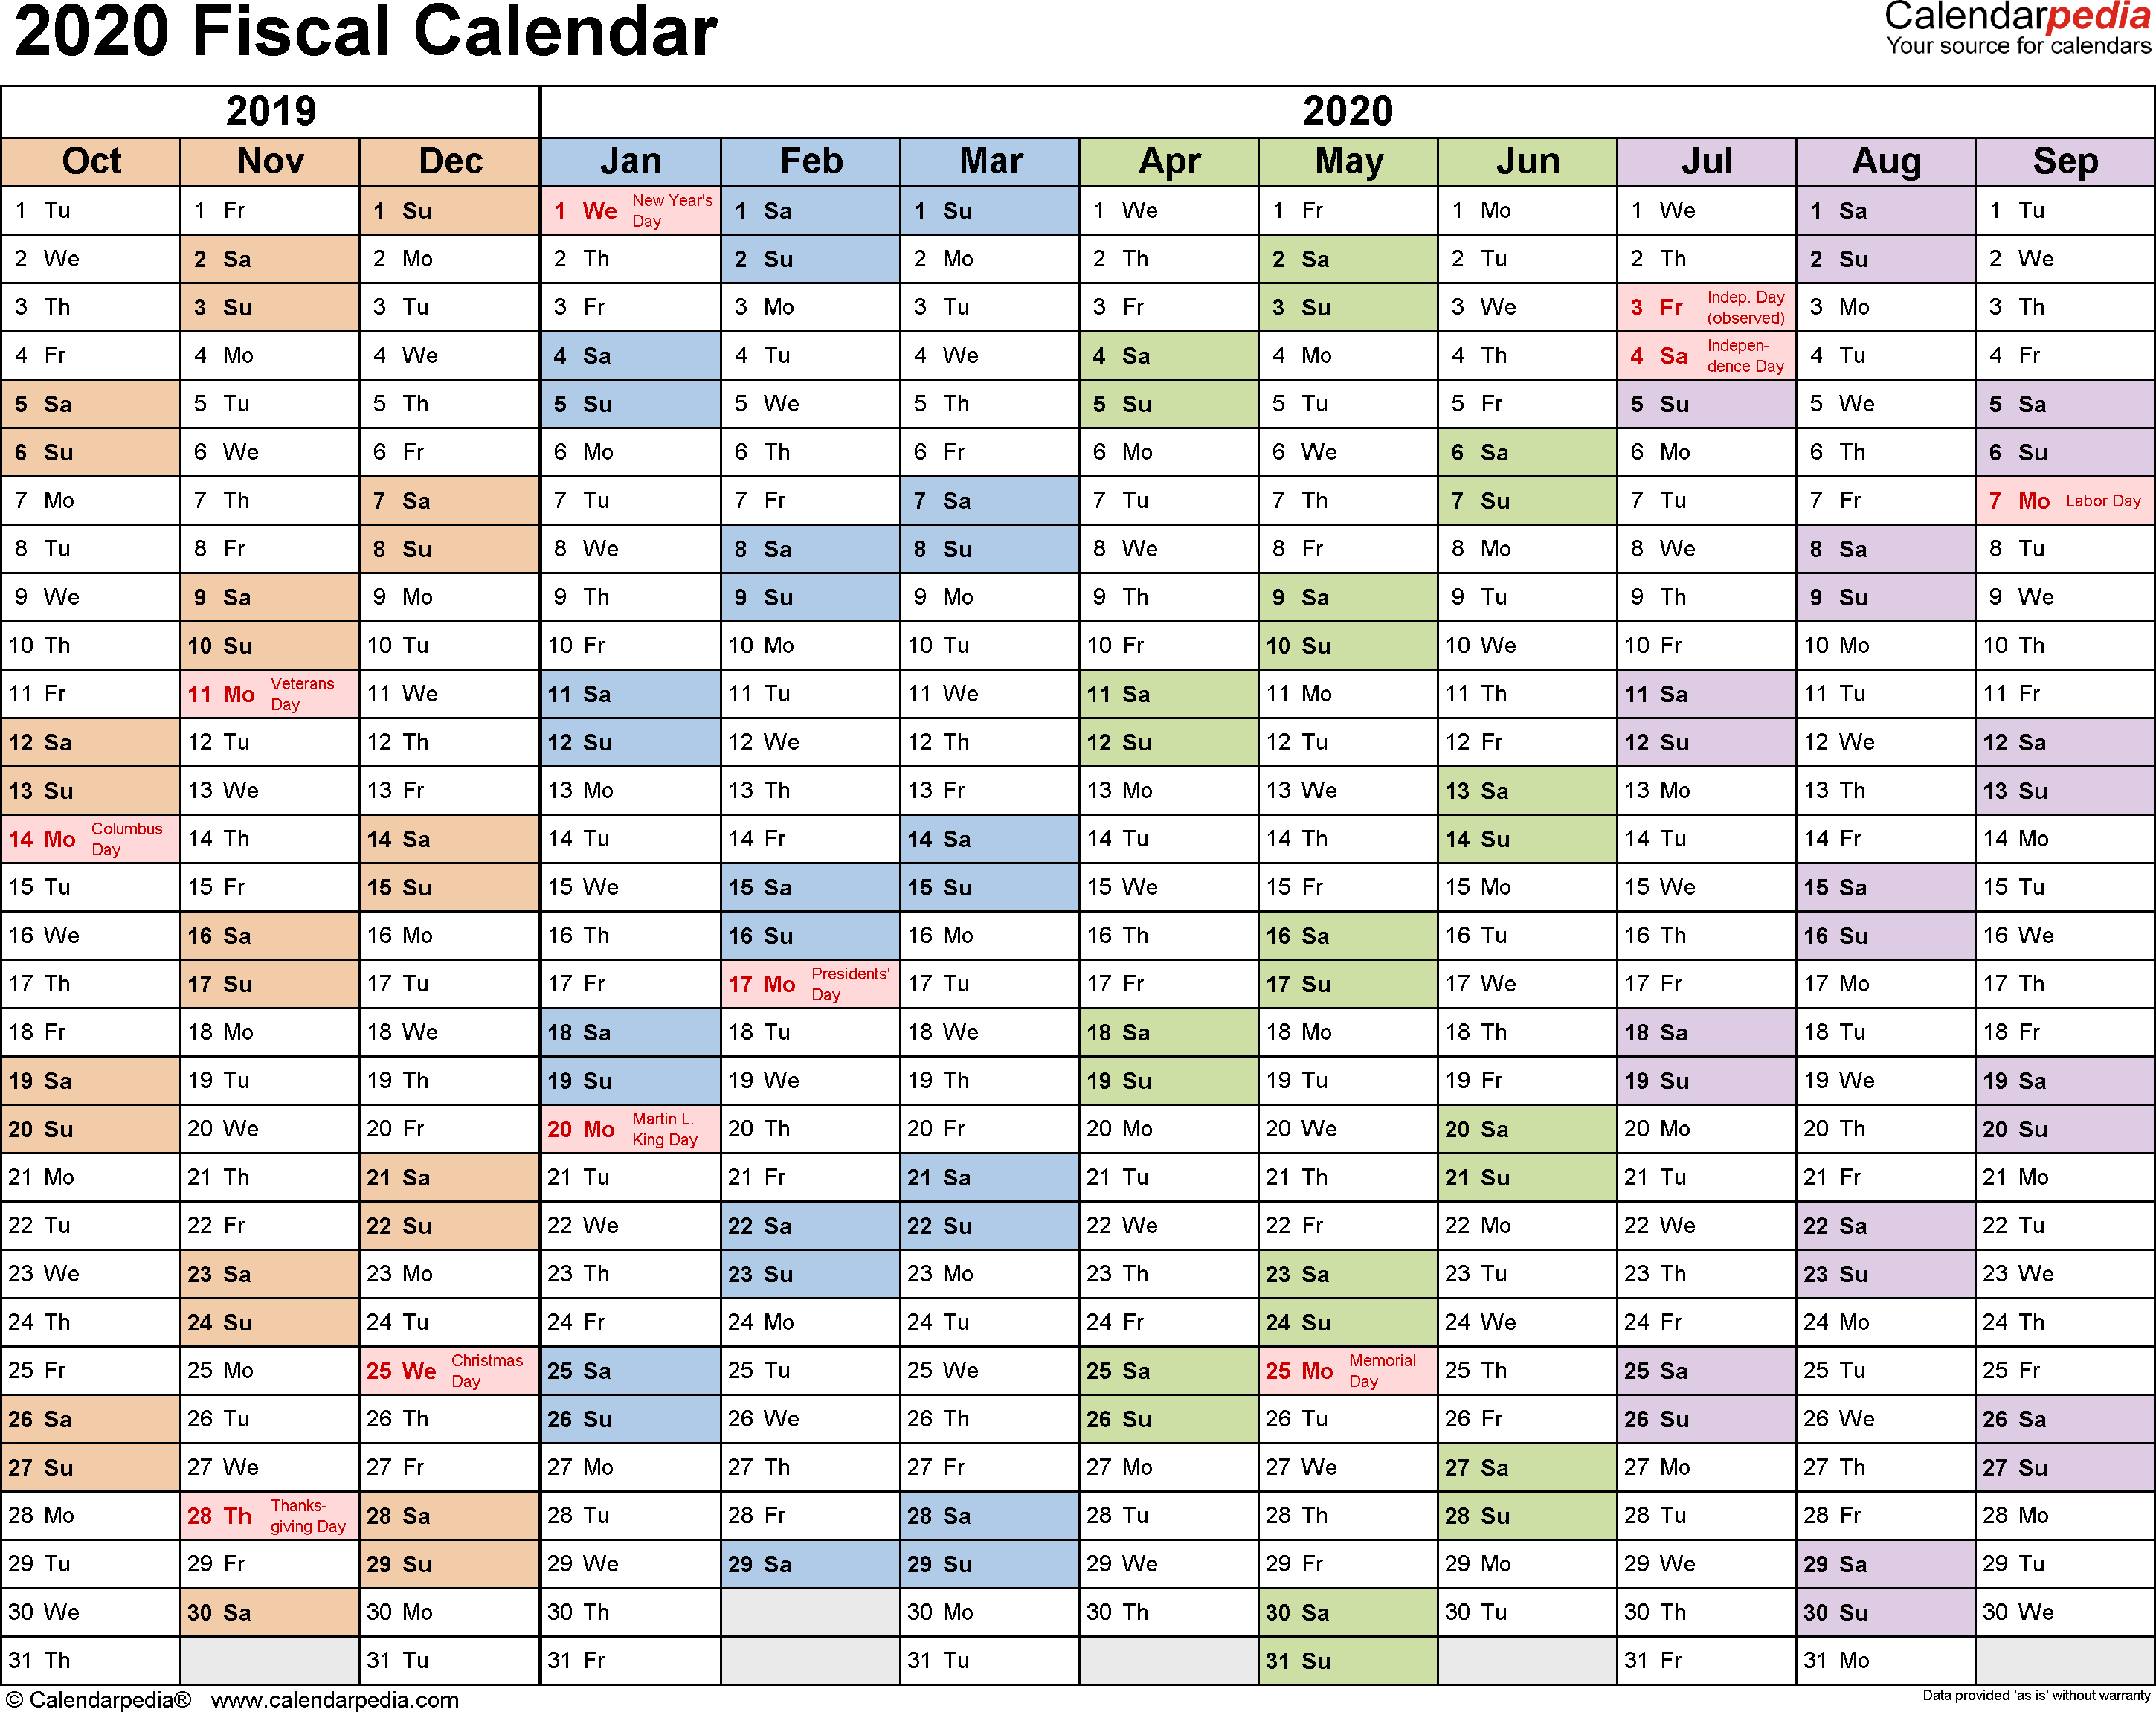 Fiscal Calendars 2020 - Free Printable Excel Templates pertaining to Payroll Calendar 2020 Template